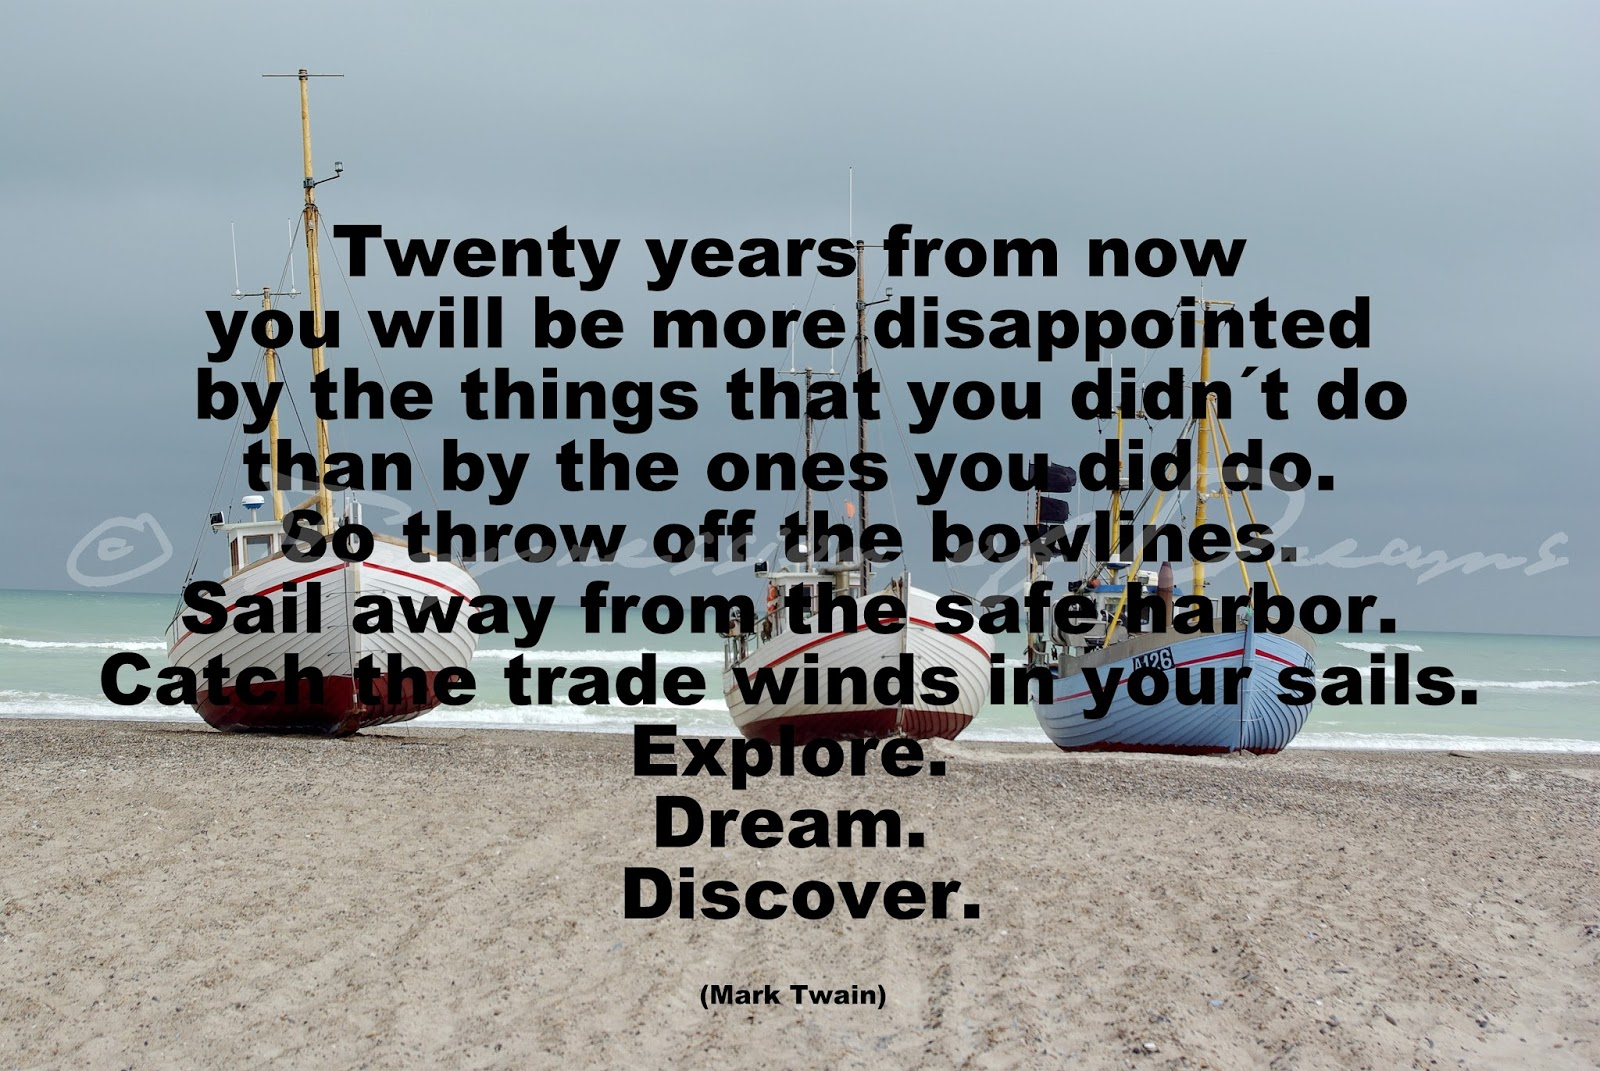 Twenty years from now you will be more disappointed by the things that you didn´t do than by the ones you did do. So throw off the bowlines. Sail away from the safe harbor. Catch the trade winds in your sails. Explore. Dream. Discover.